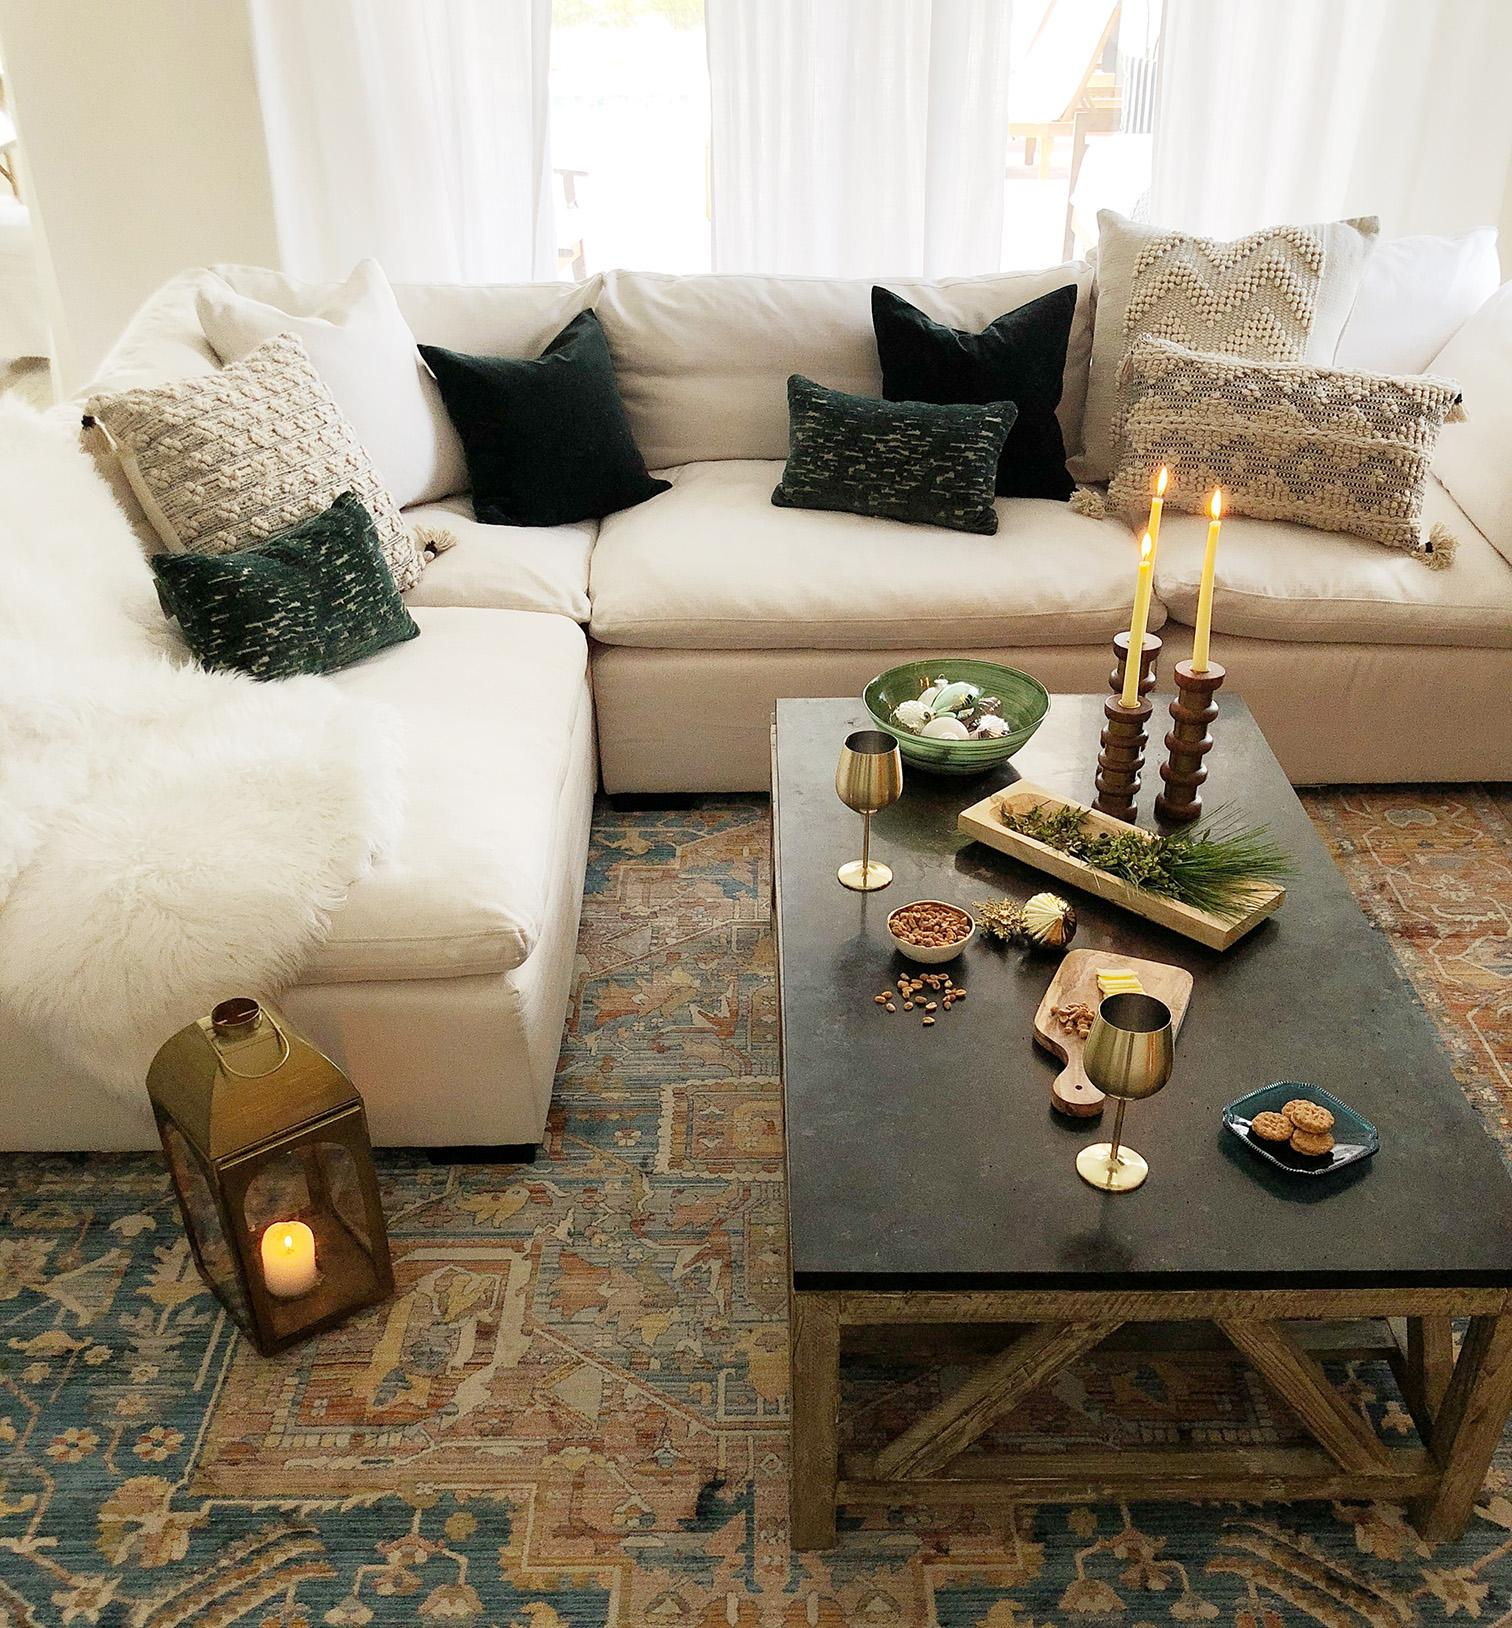 style insider inspiration room makeover image 17